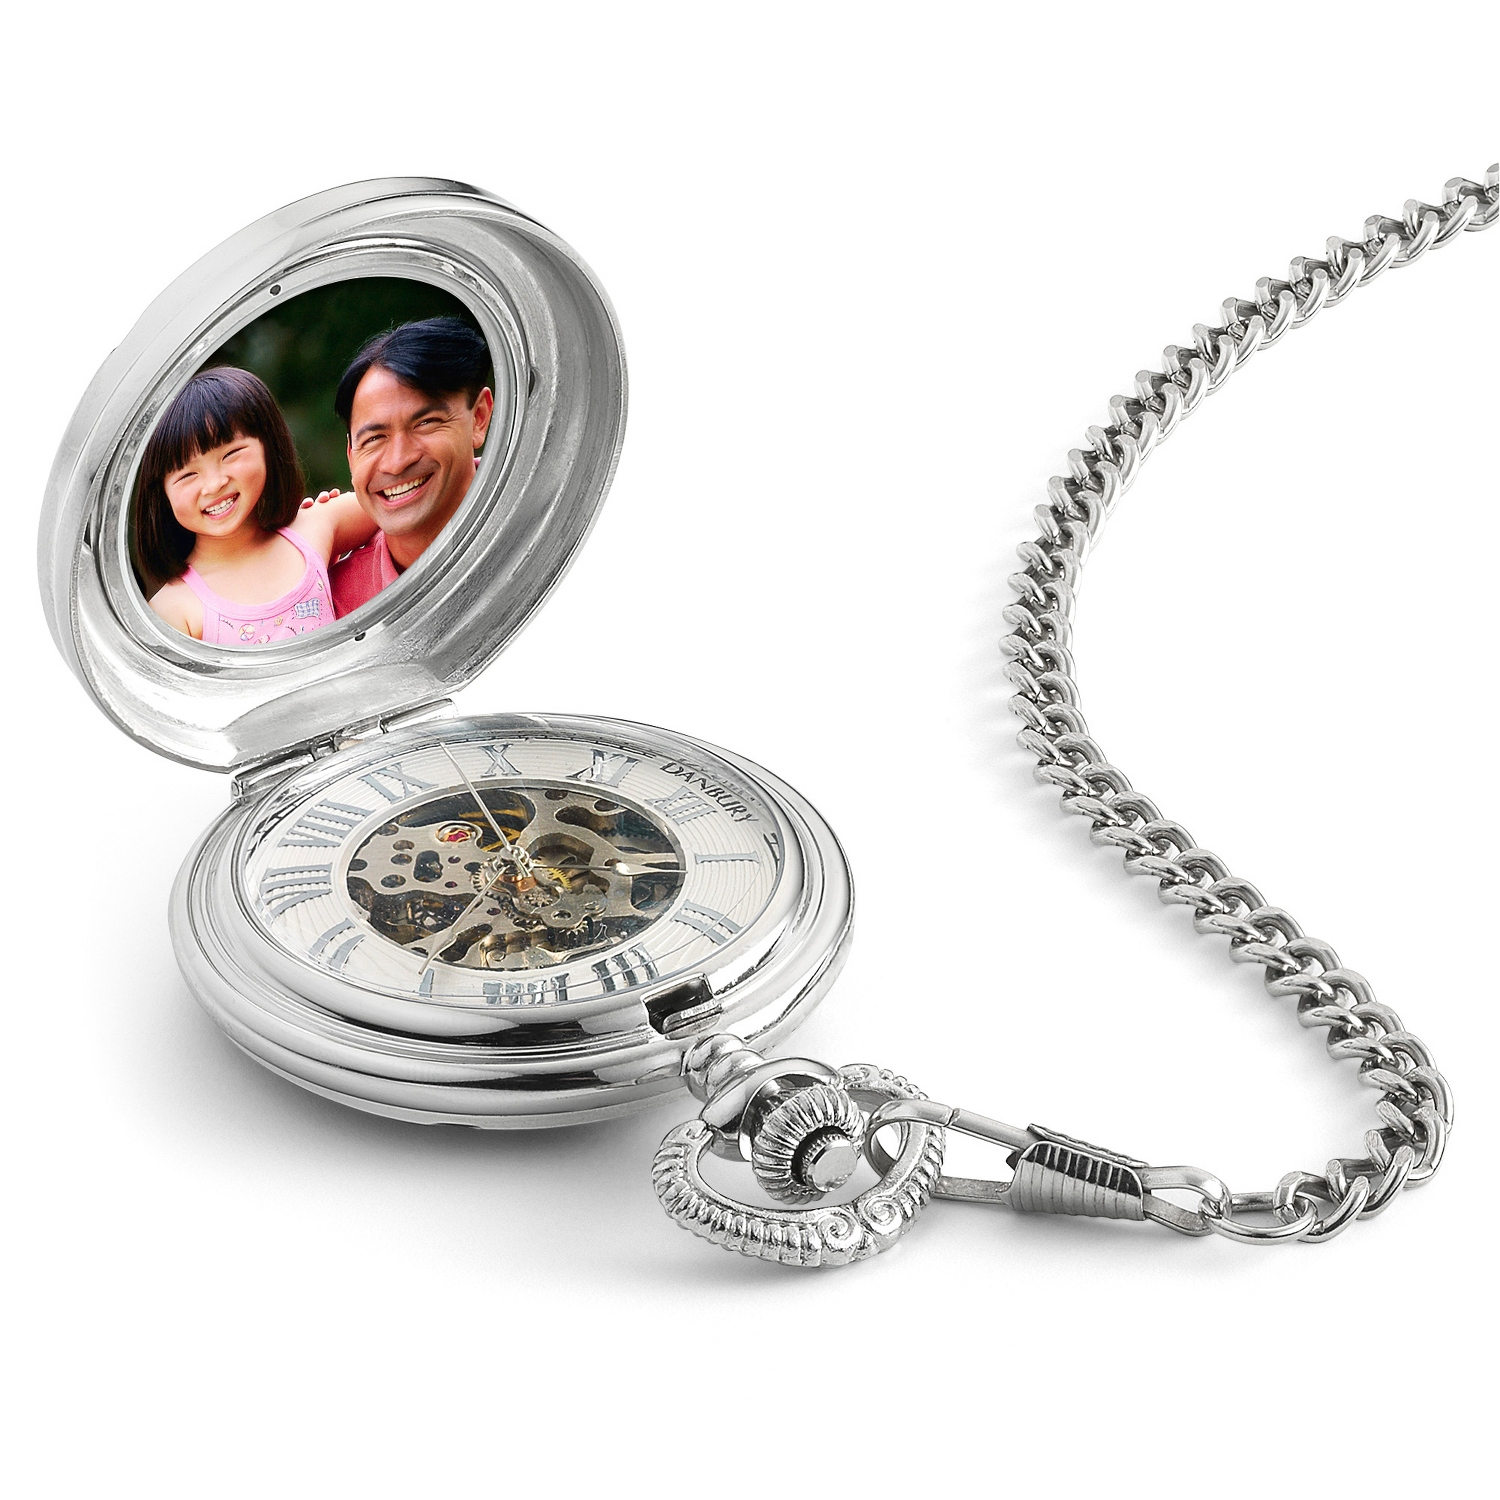 of photo bridal to given chains bride party with inspired pocket engagement pin watches vintage placed